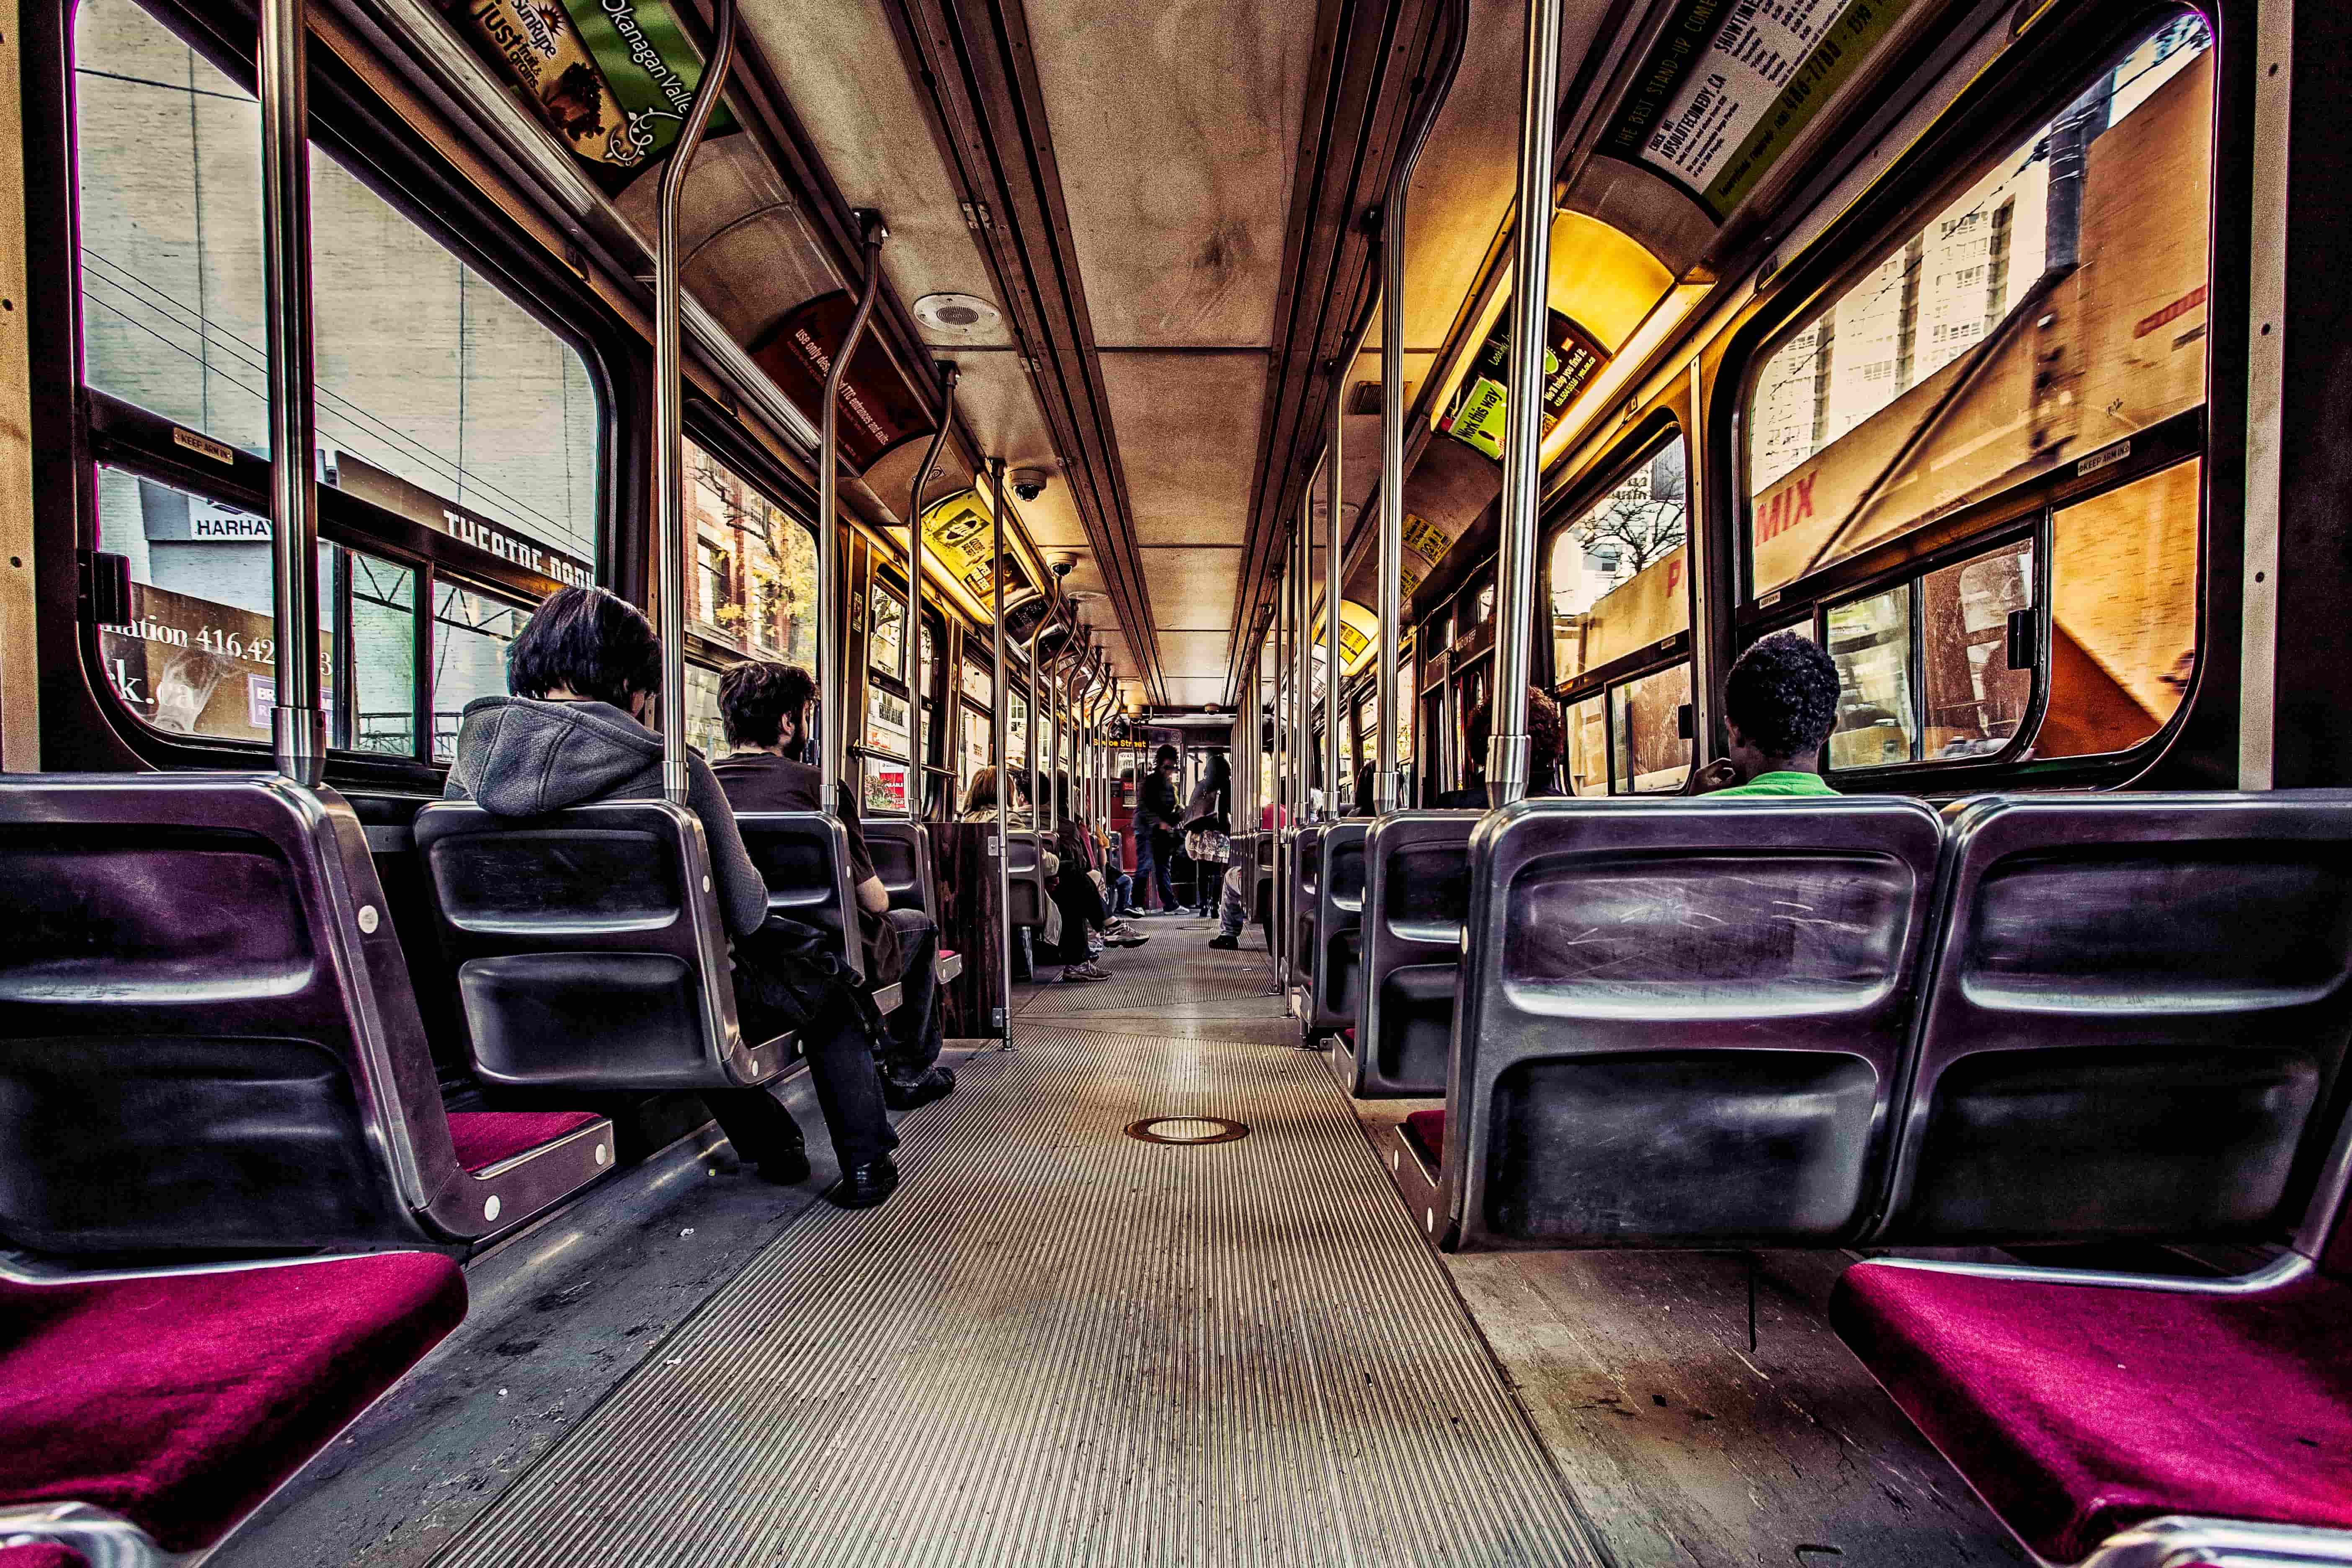 Image of seats inside a streetcar